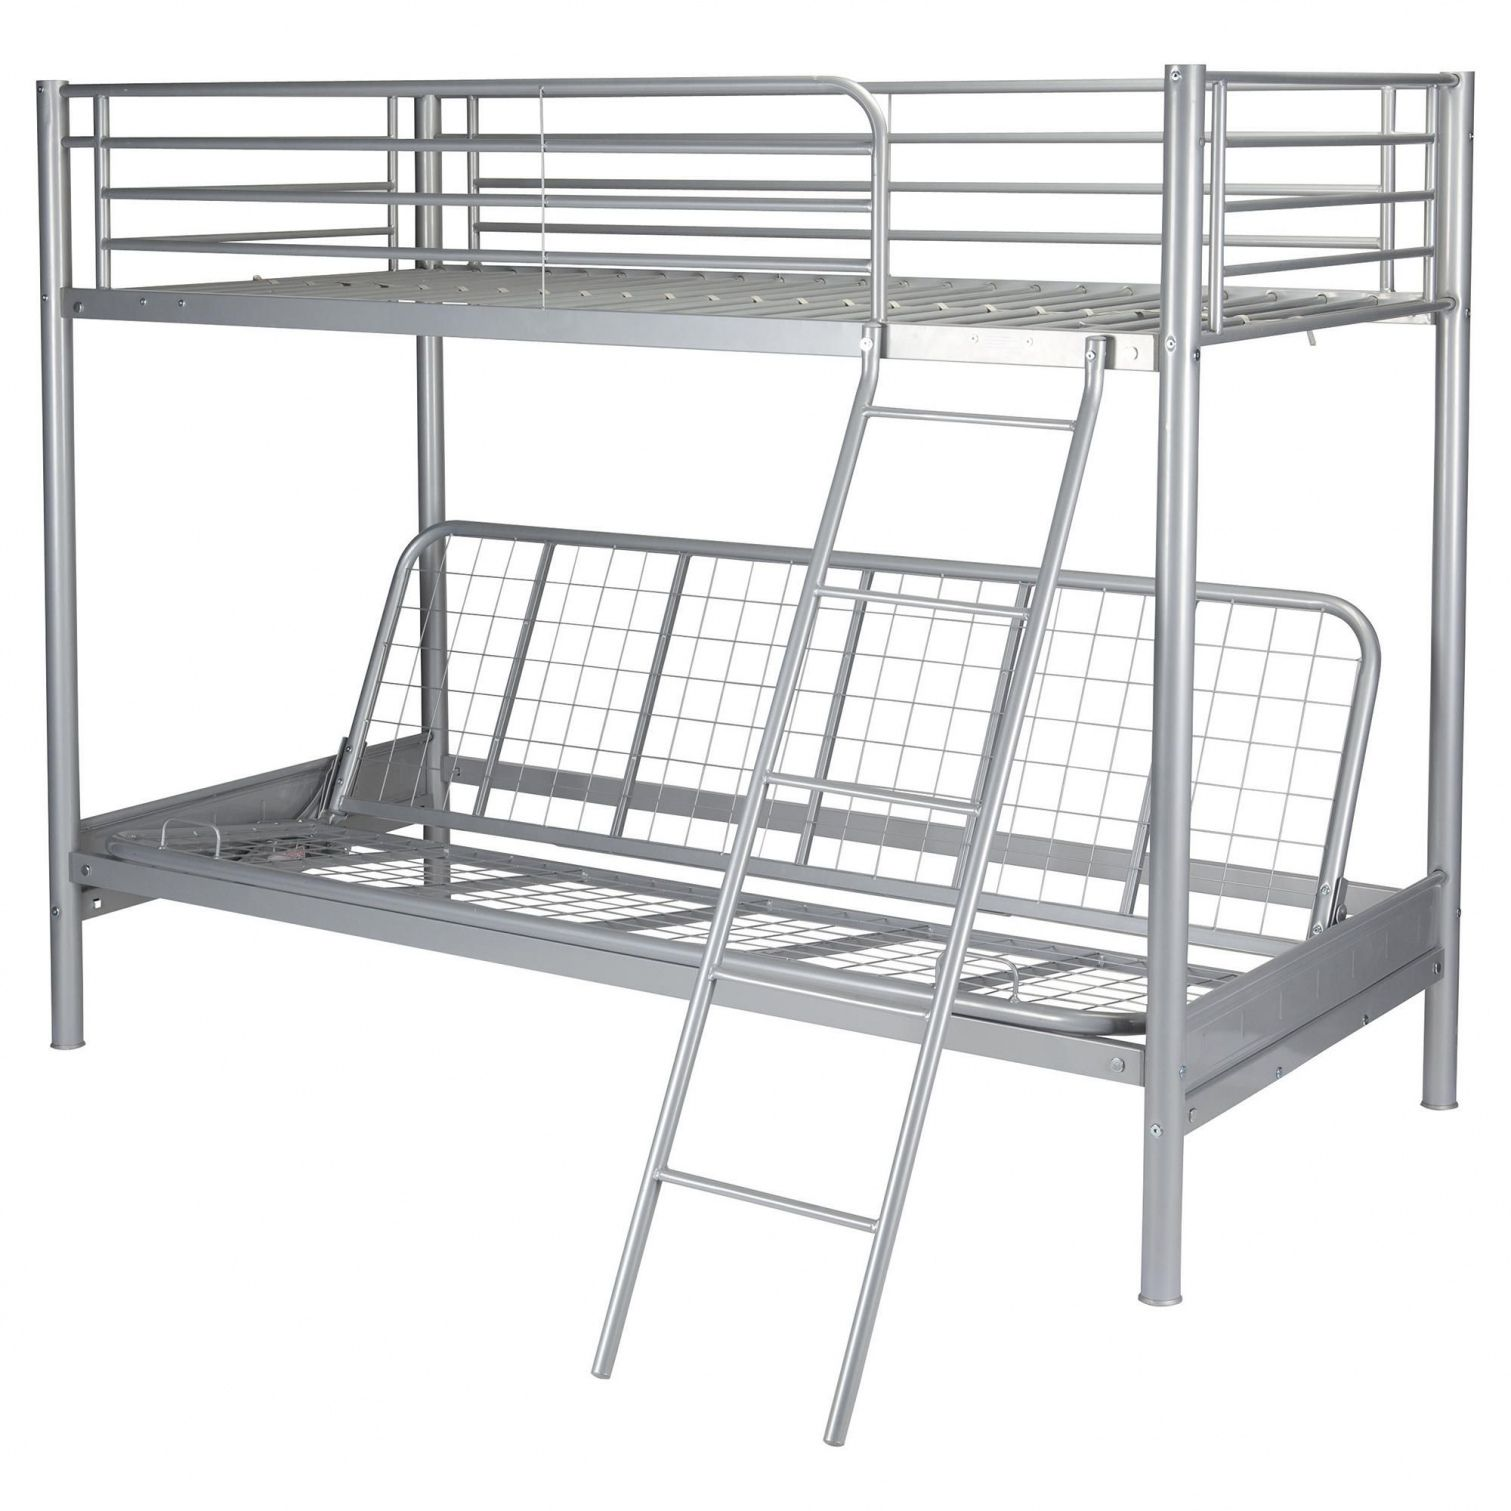 Futon Bunk Bed Frame Only Interior Paint Colors 2017 Check More At Http